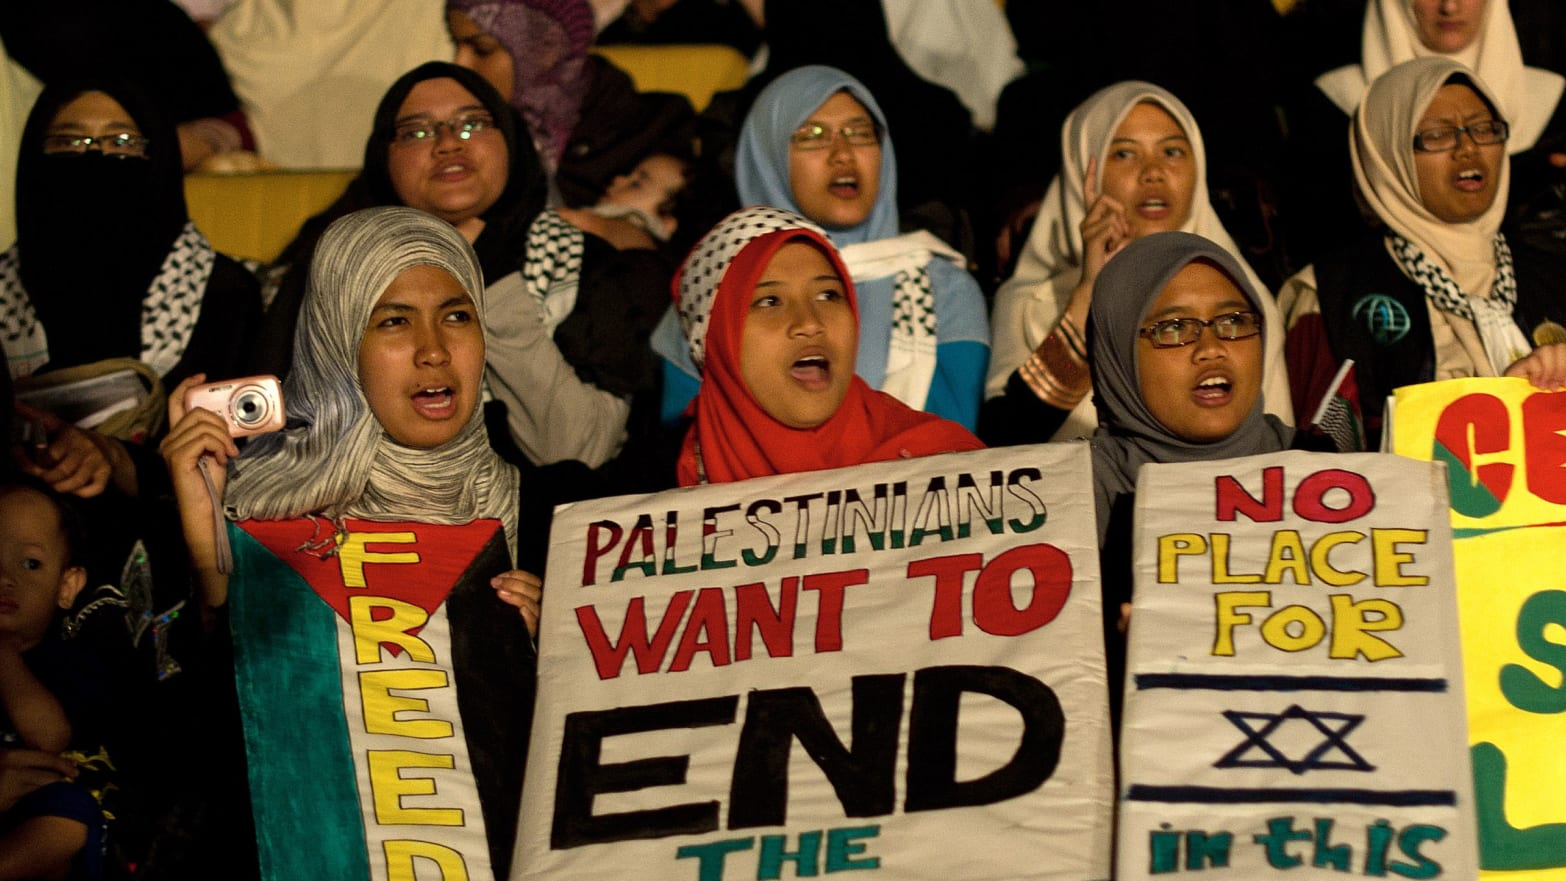 Why Palestine can't be Freed